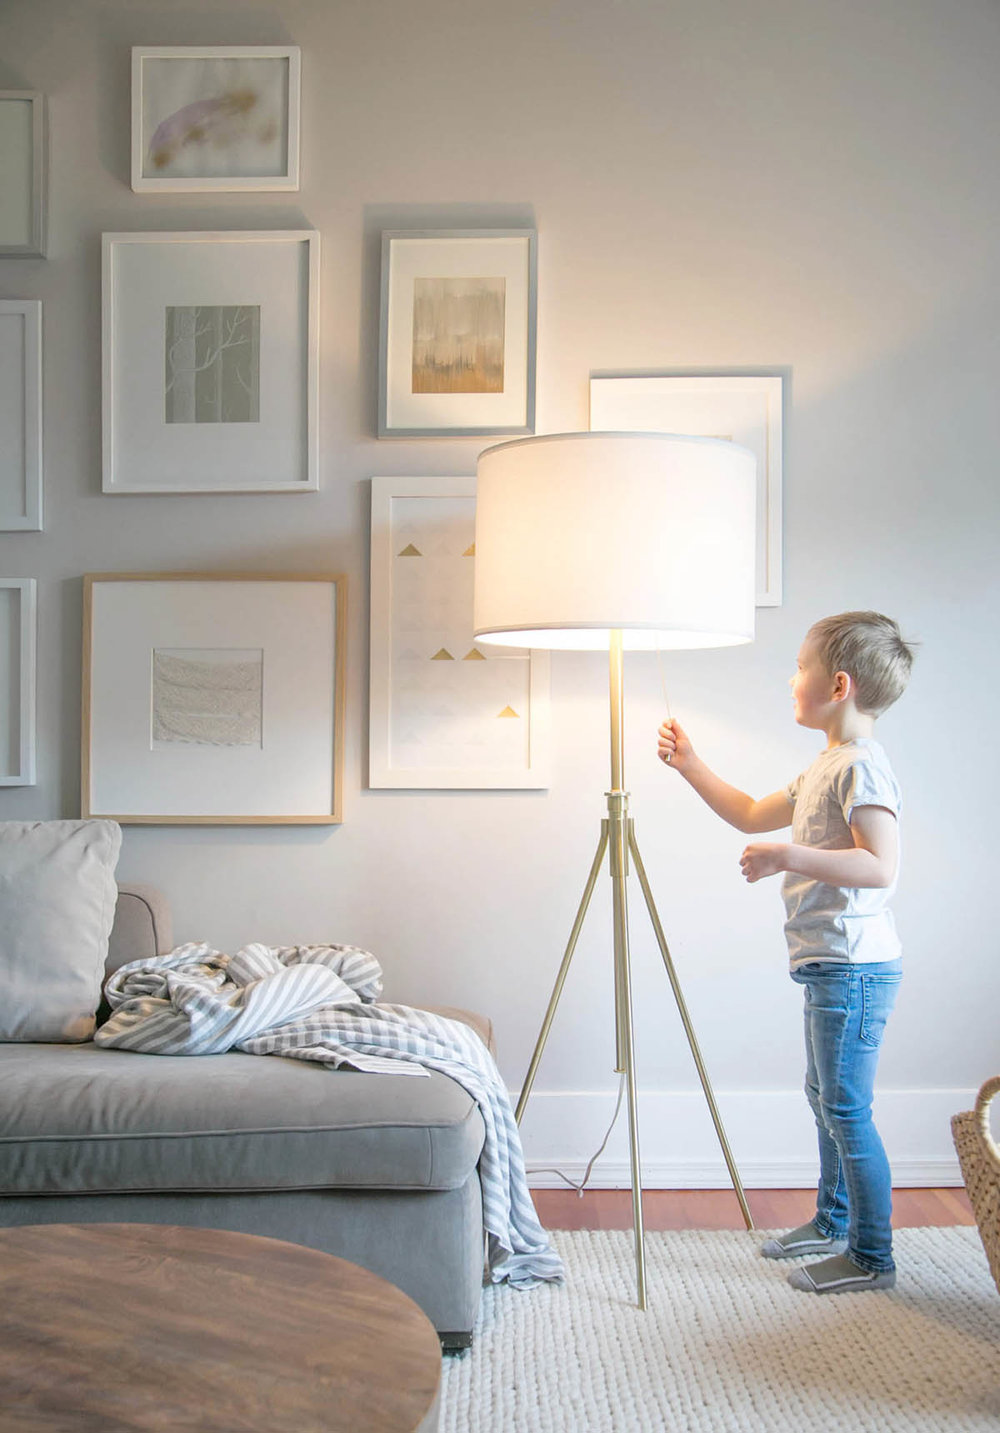 6 Ways To Add Lighting Your Childs Room Winter Daisy 3 Way Switch Light Floor Lamp In Living